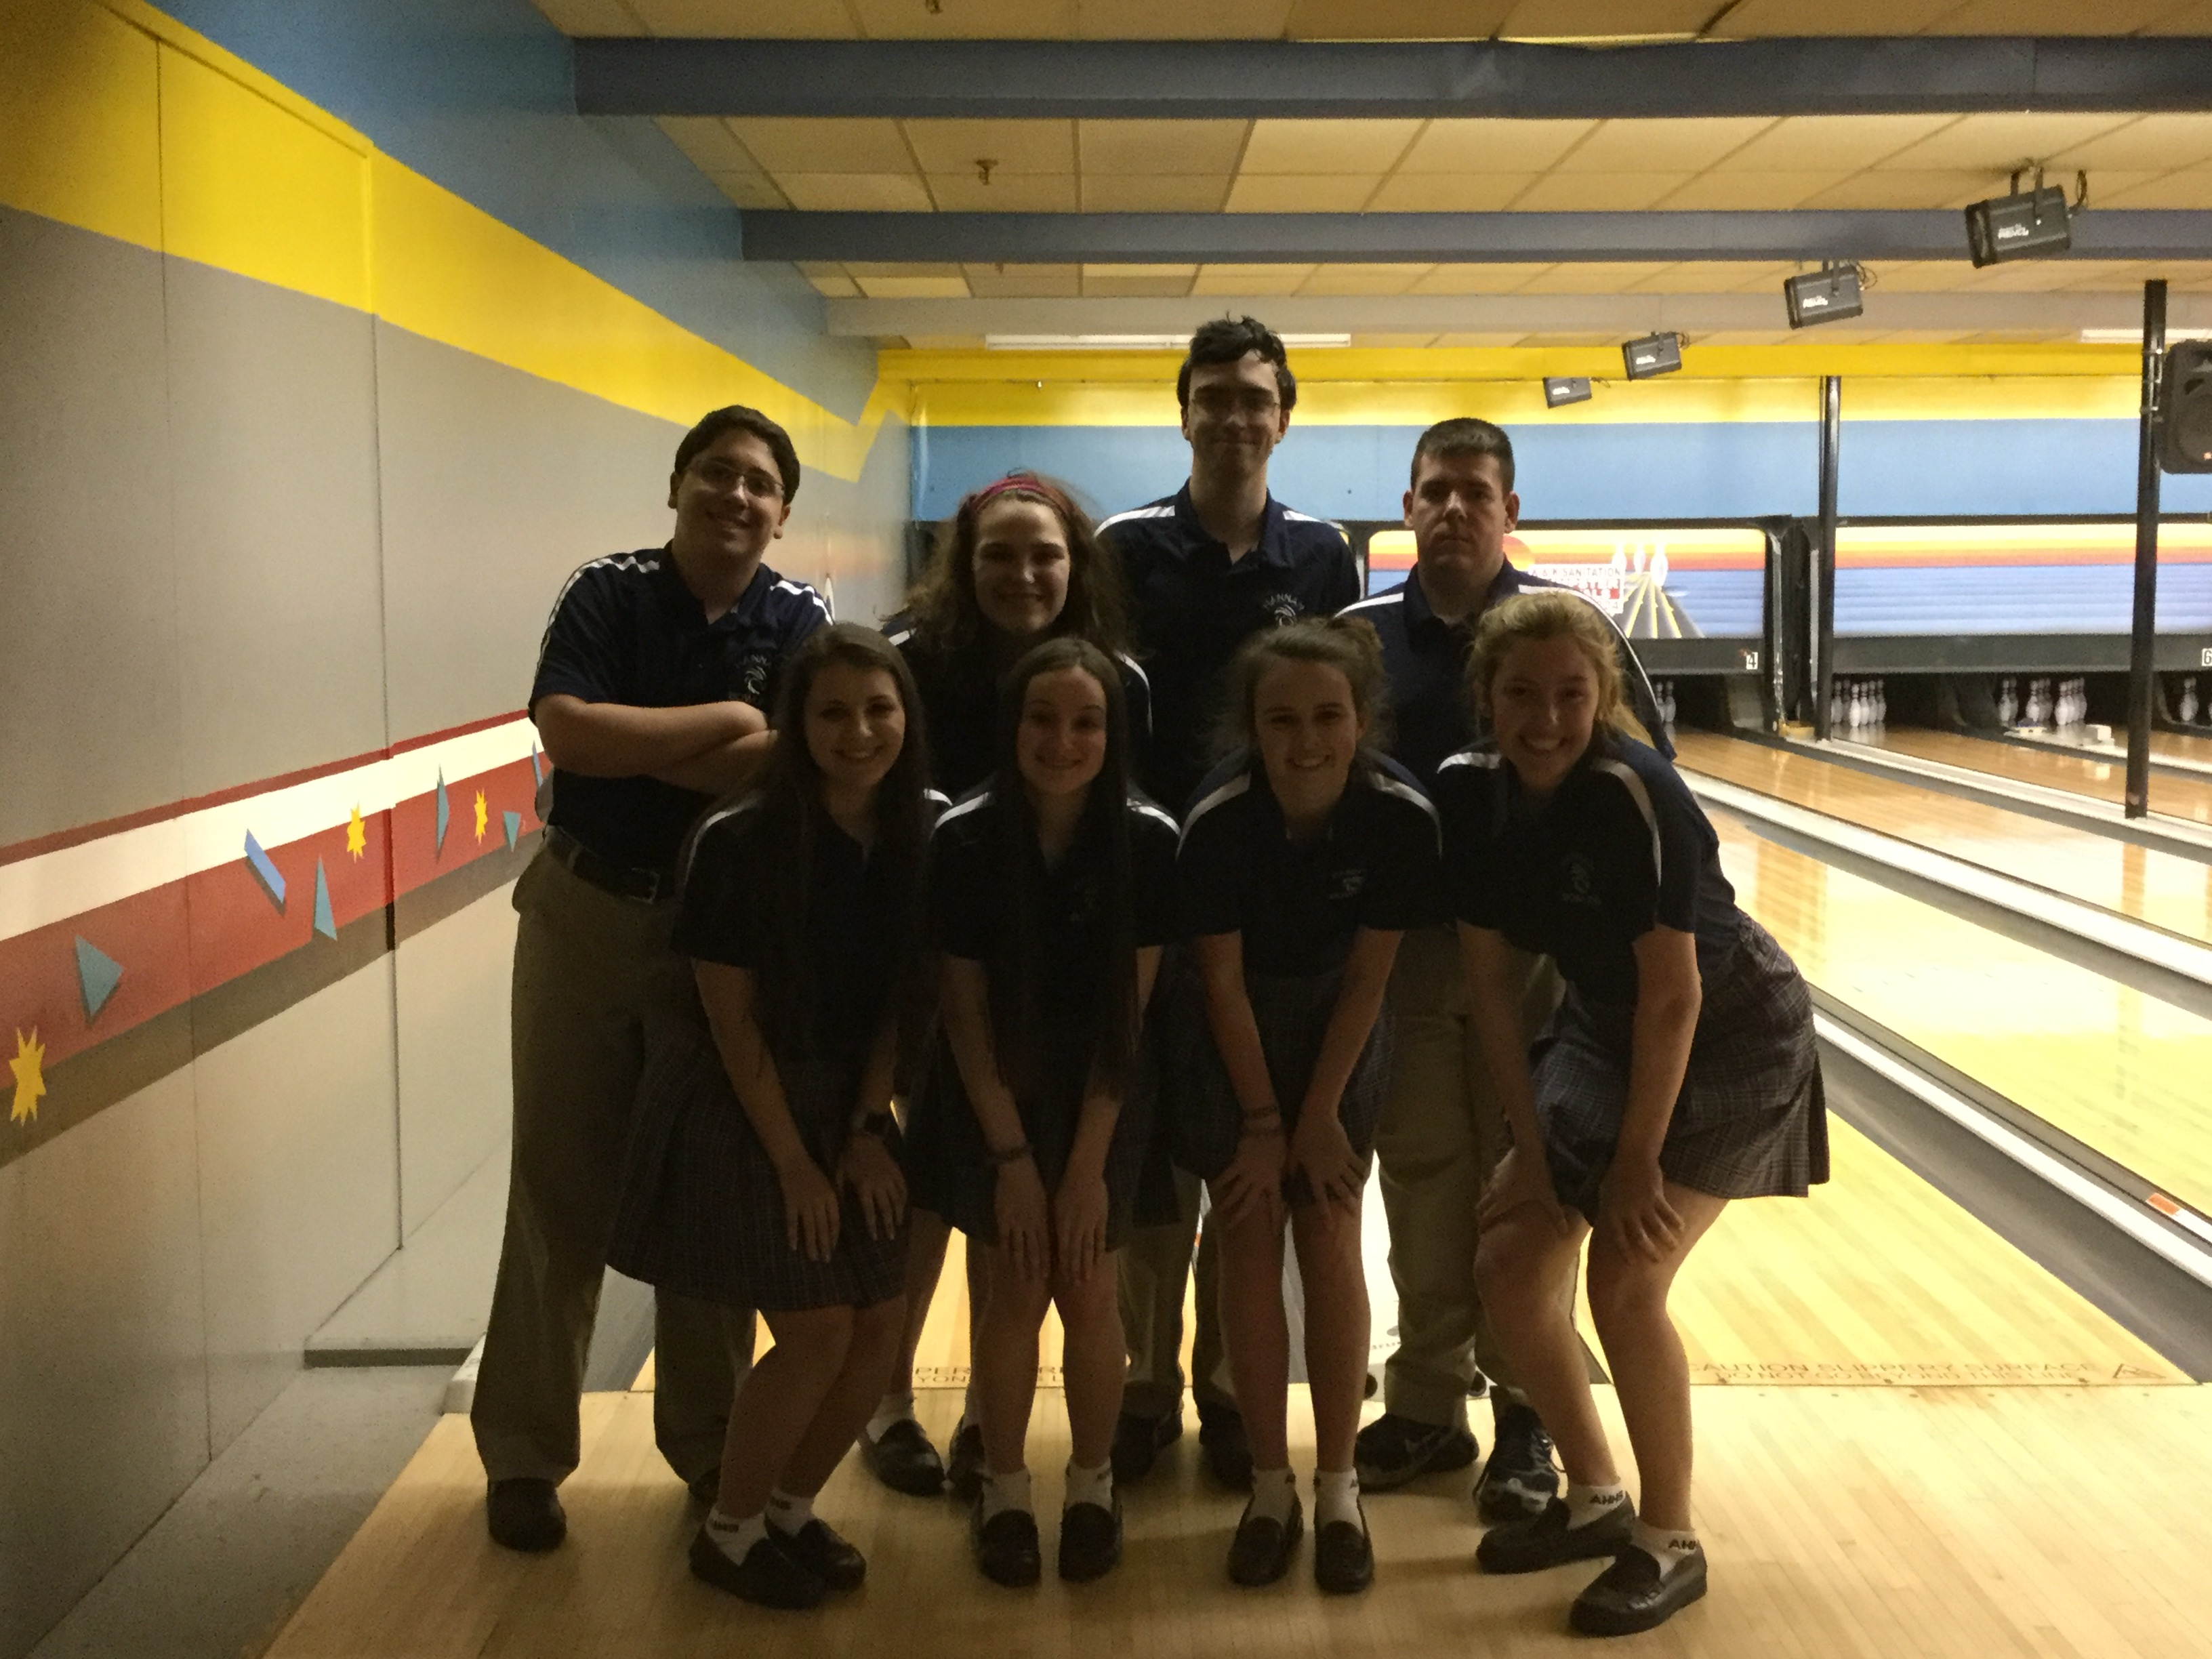 WATCH: Hannan bowling team rolling through the season